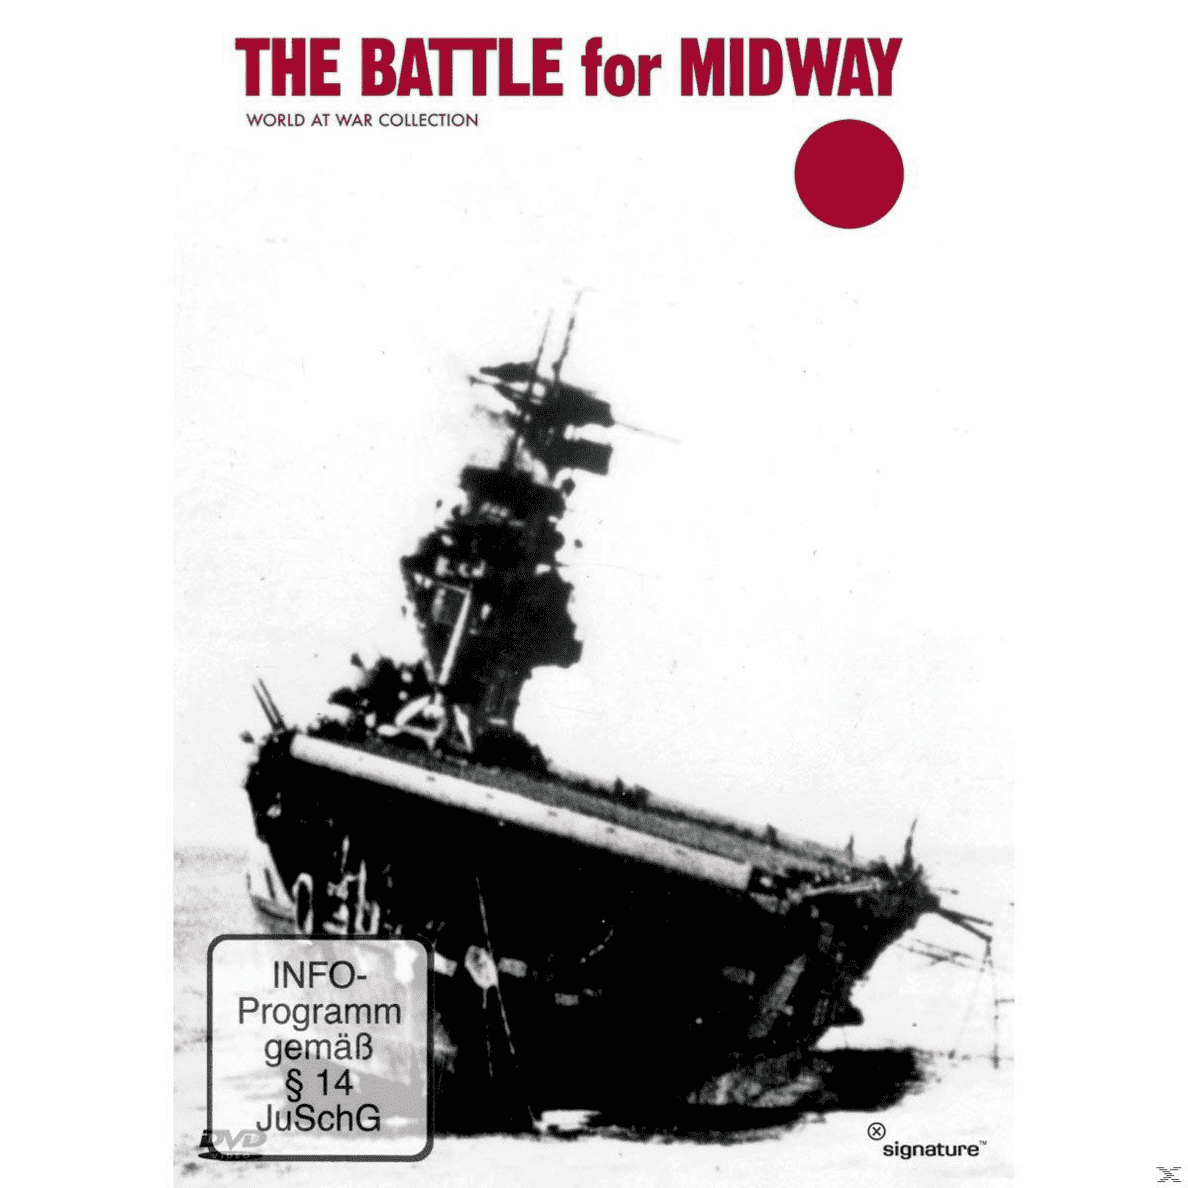 THE BATTLE FOR MIDWAY auf DVD